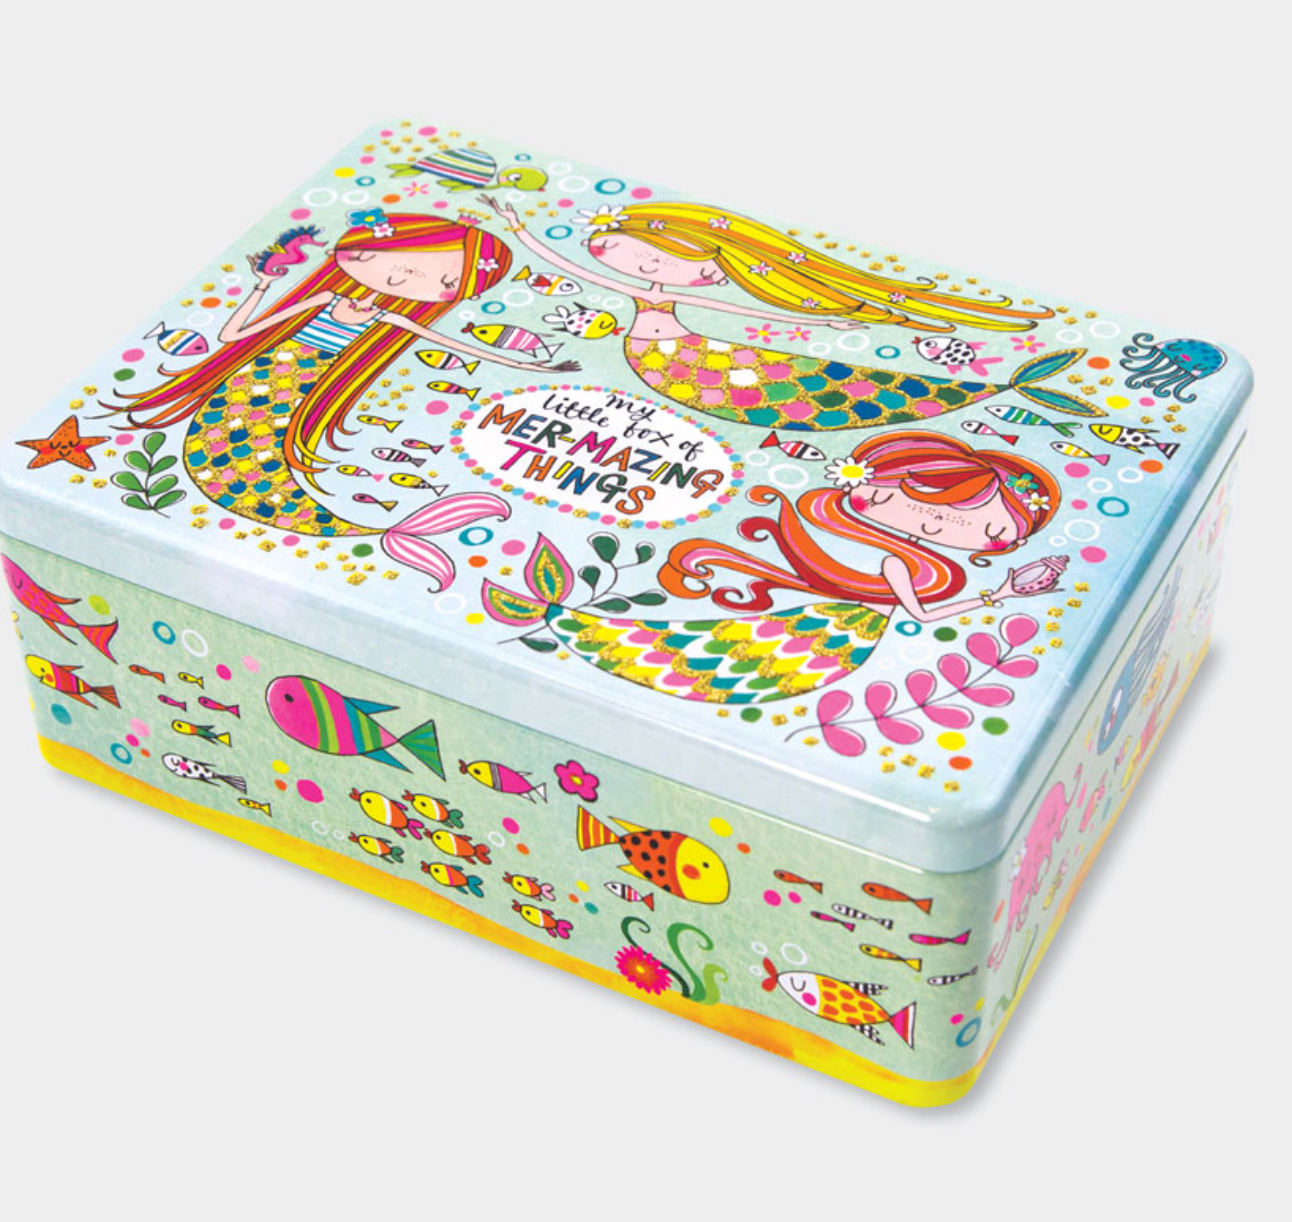 Rachel ellen flittered tin, mermaid